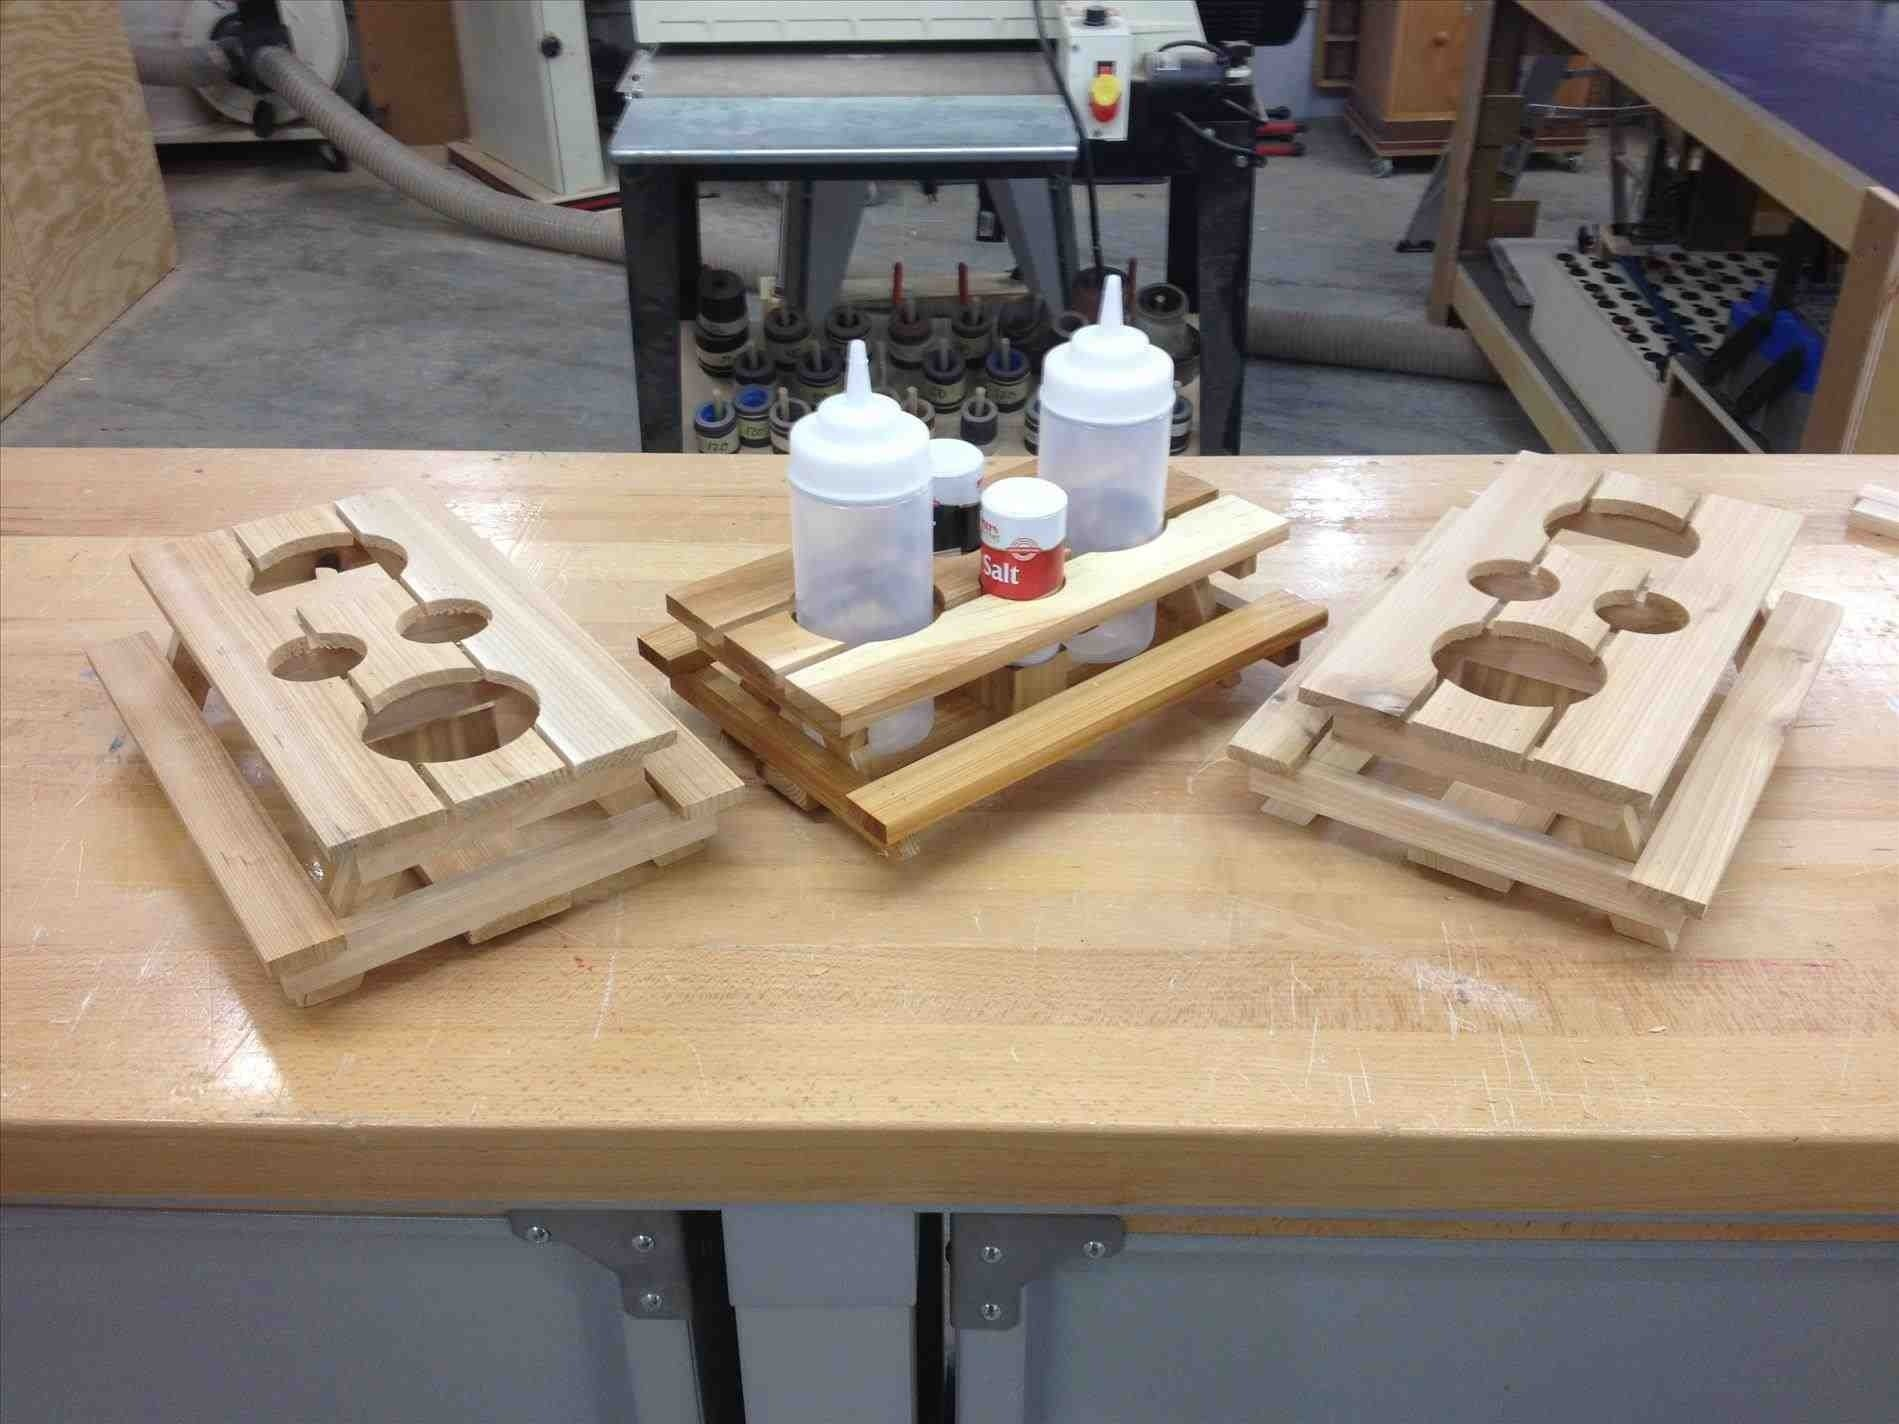 10 Nice Woodshop Project Ideas For High School the images collection of project ideas small free woodshop most 2020